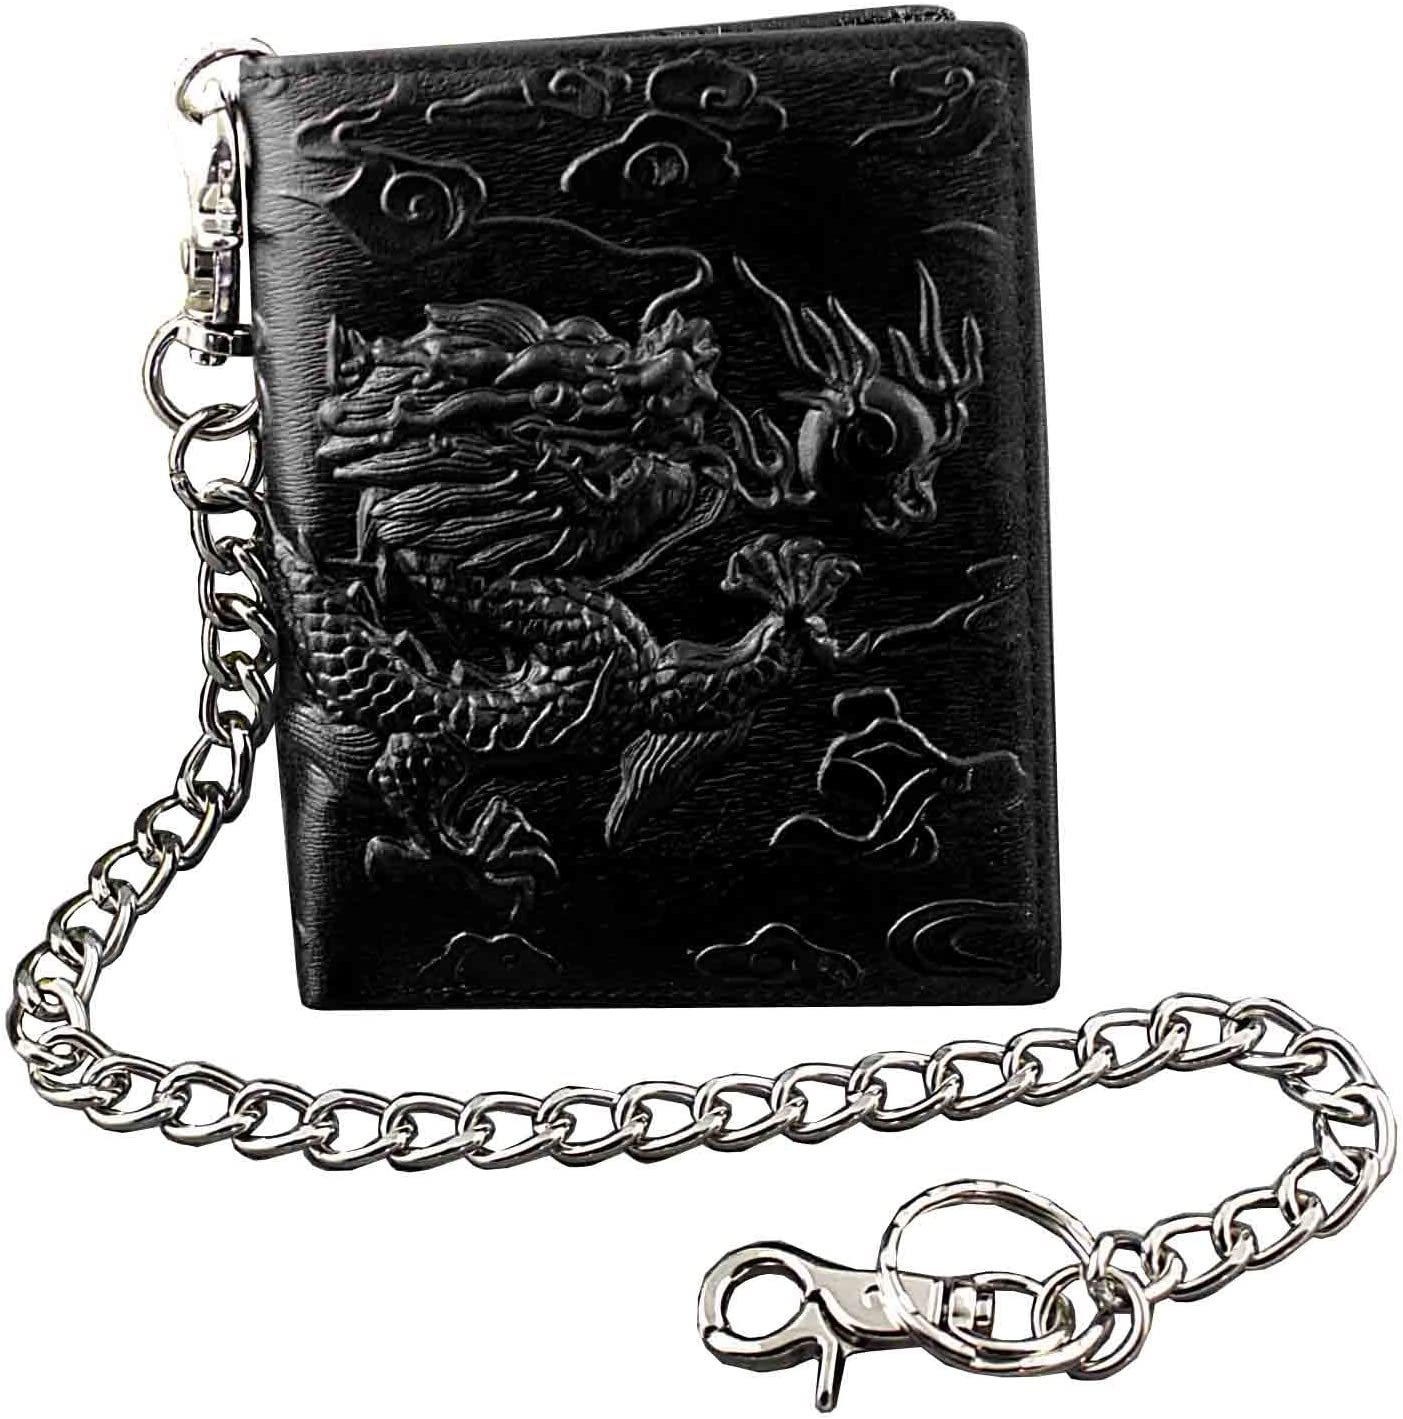 Balck Men Real Leather Vintage Dragon Wallet with Chain Card Holder Purse (vertical)